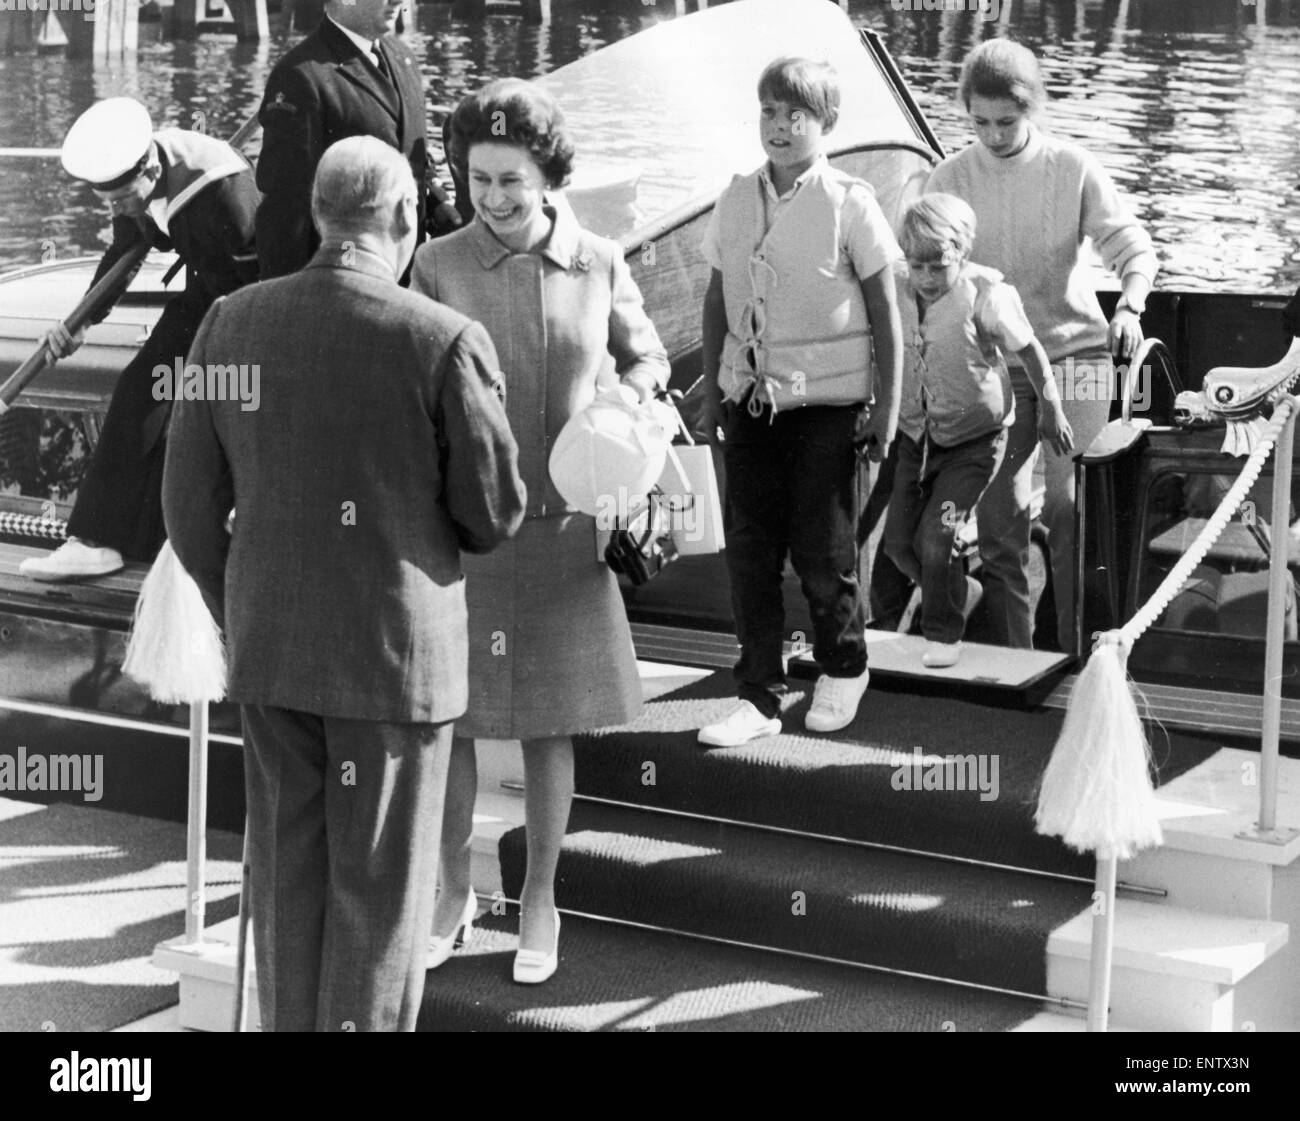 Royal Tour, The Queen meeting King Olaf of Norway. Prince Edward, Prince Andrew and Princess Anne. 13th June 1969. - Stock Image